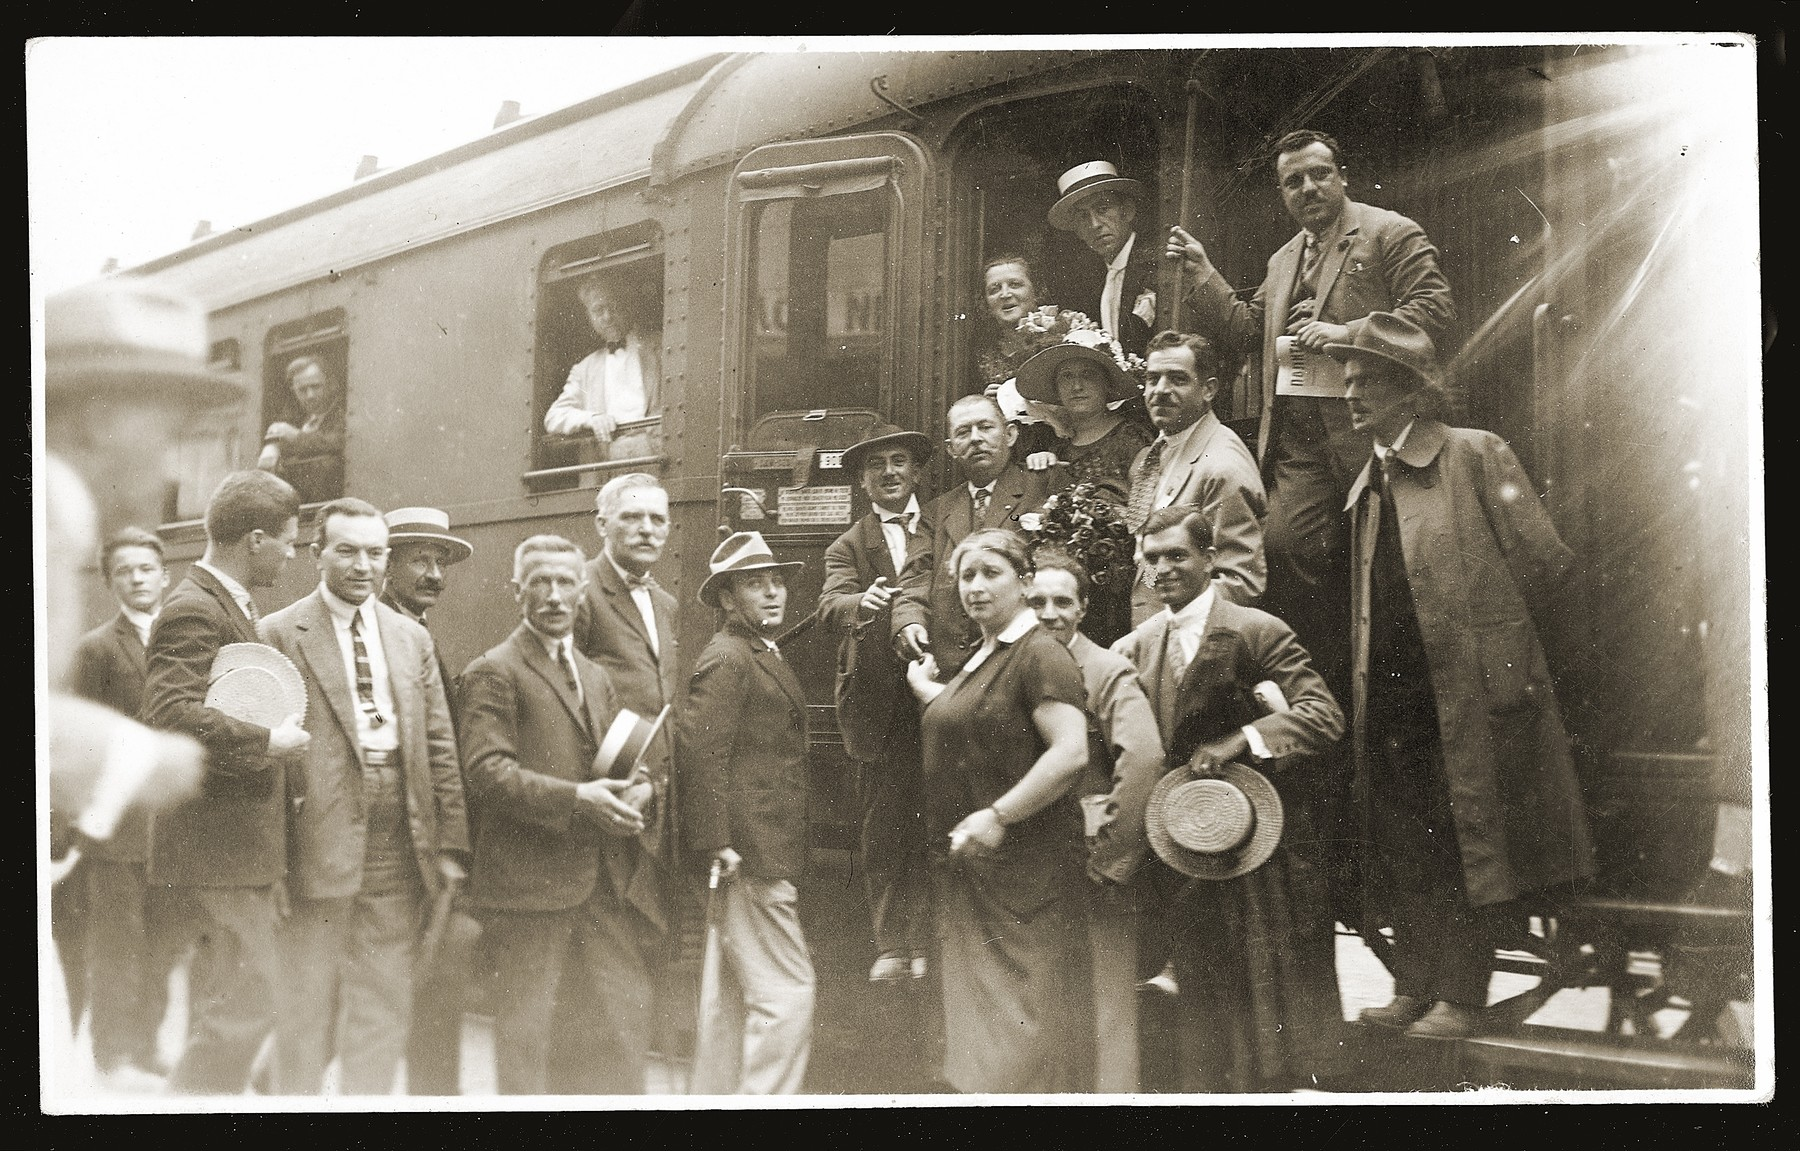 Members of the Serbian photographers' union pose at the Belgrade train station before their departure for a photographers' convention in Vienna.    Gavra Konfino, the chairman of the photographers'  union is standing in the second row, second from right.